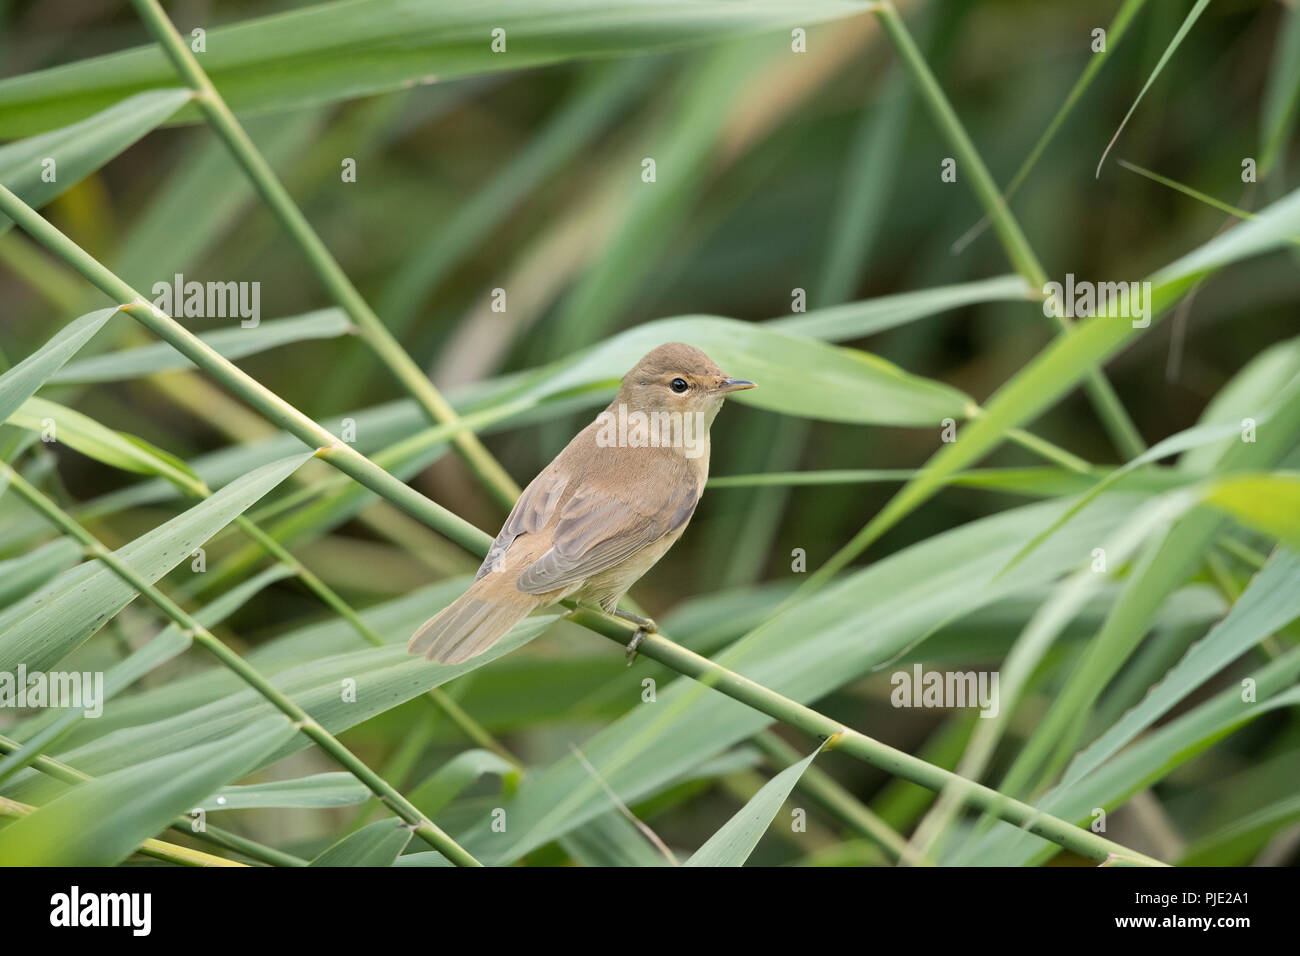 Juvenile Reed Warbler Shropshire Border Uk Stock Photo Alamy